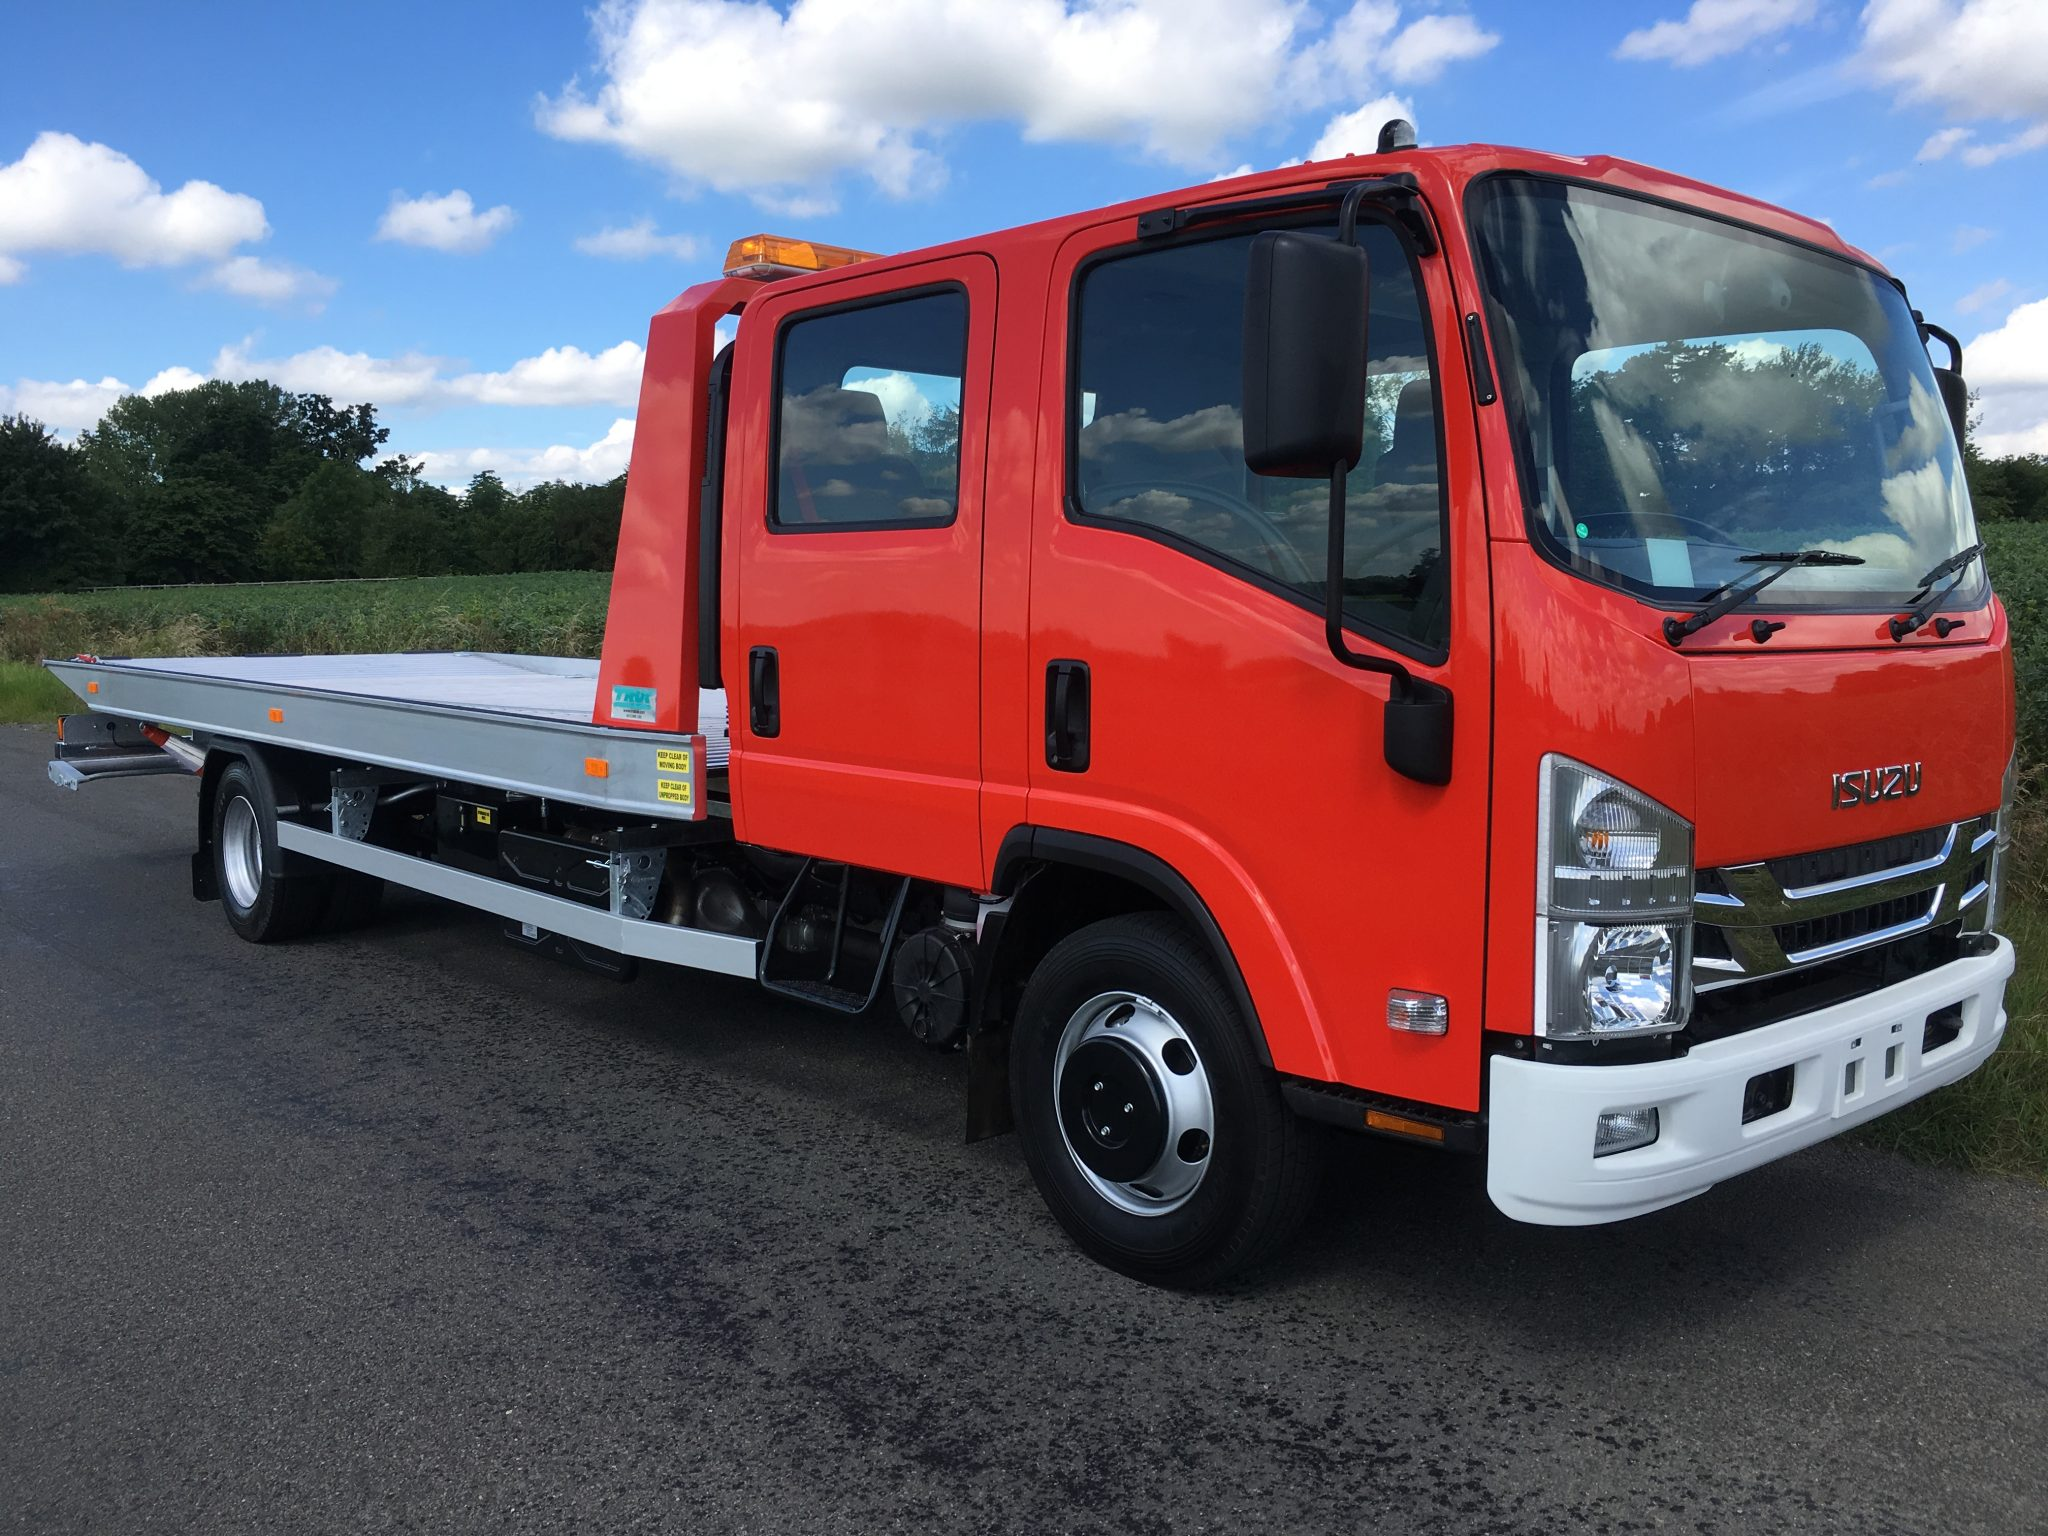 Recovery Truck - Recovery Vehicle - Slideback